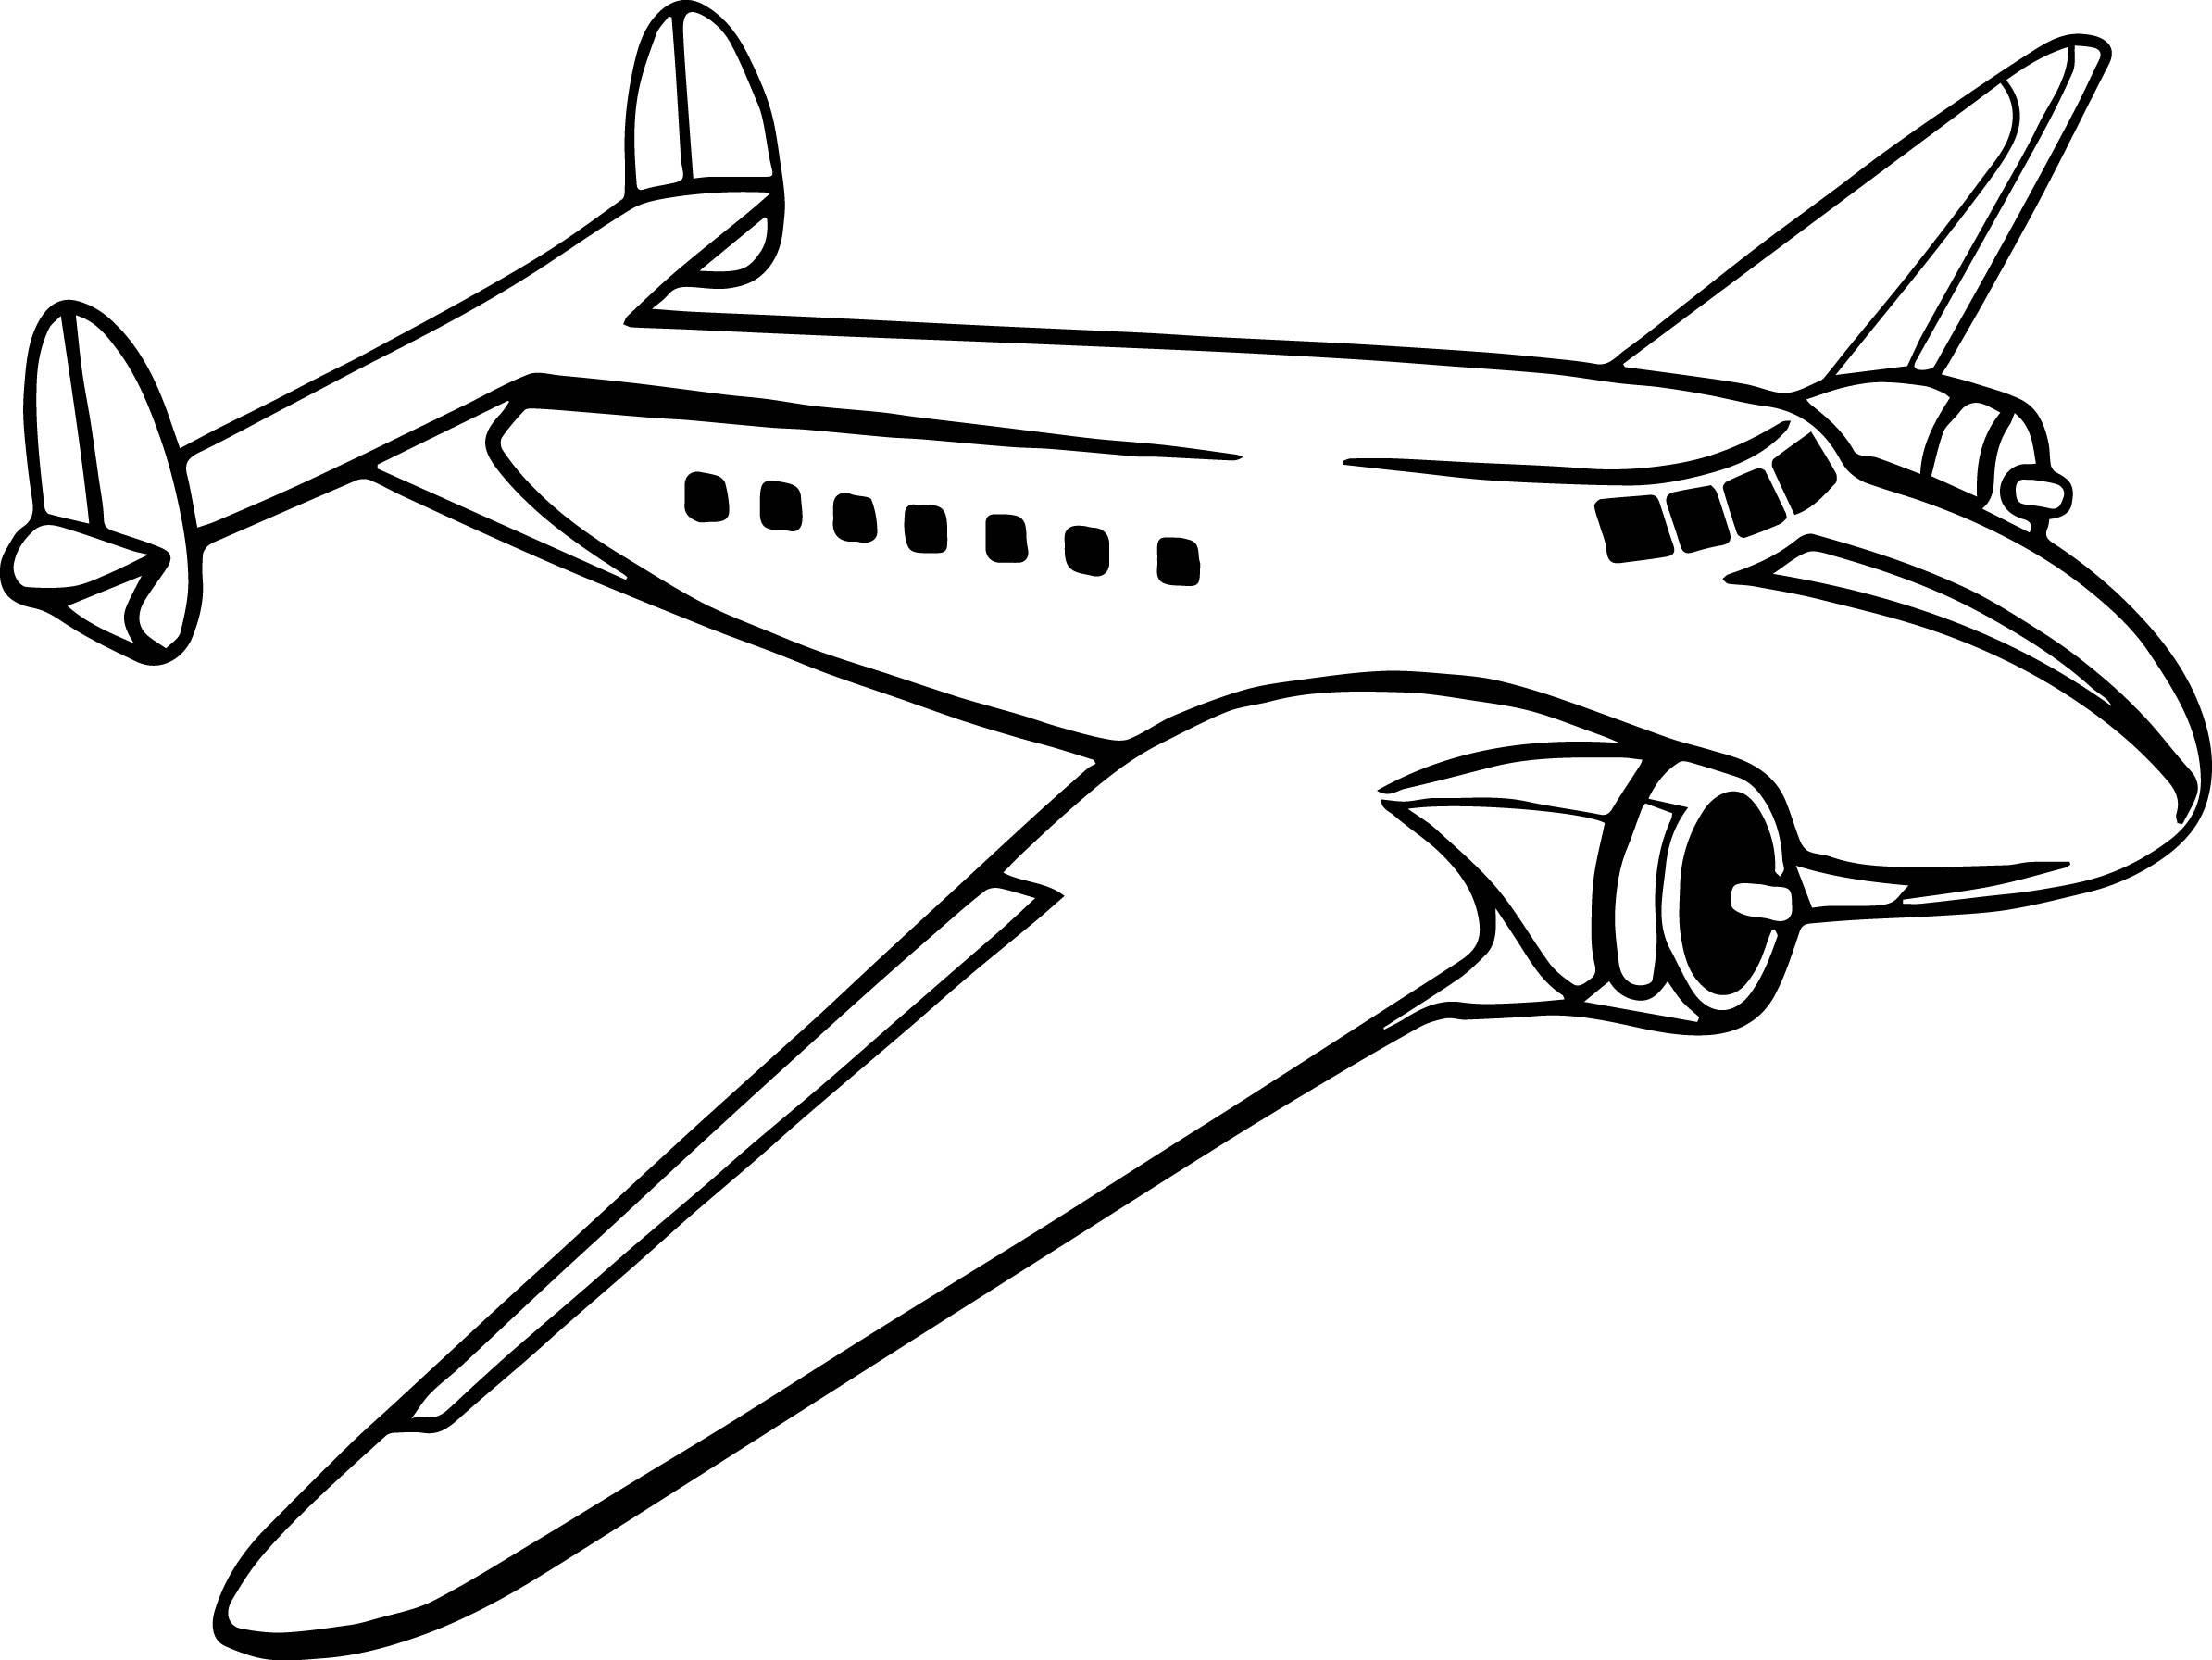 airplane coloring page printable propeller passenger airplane printable coloring page - Airplane Coloring Pages Printable